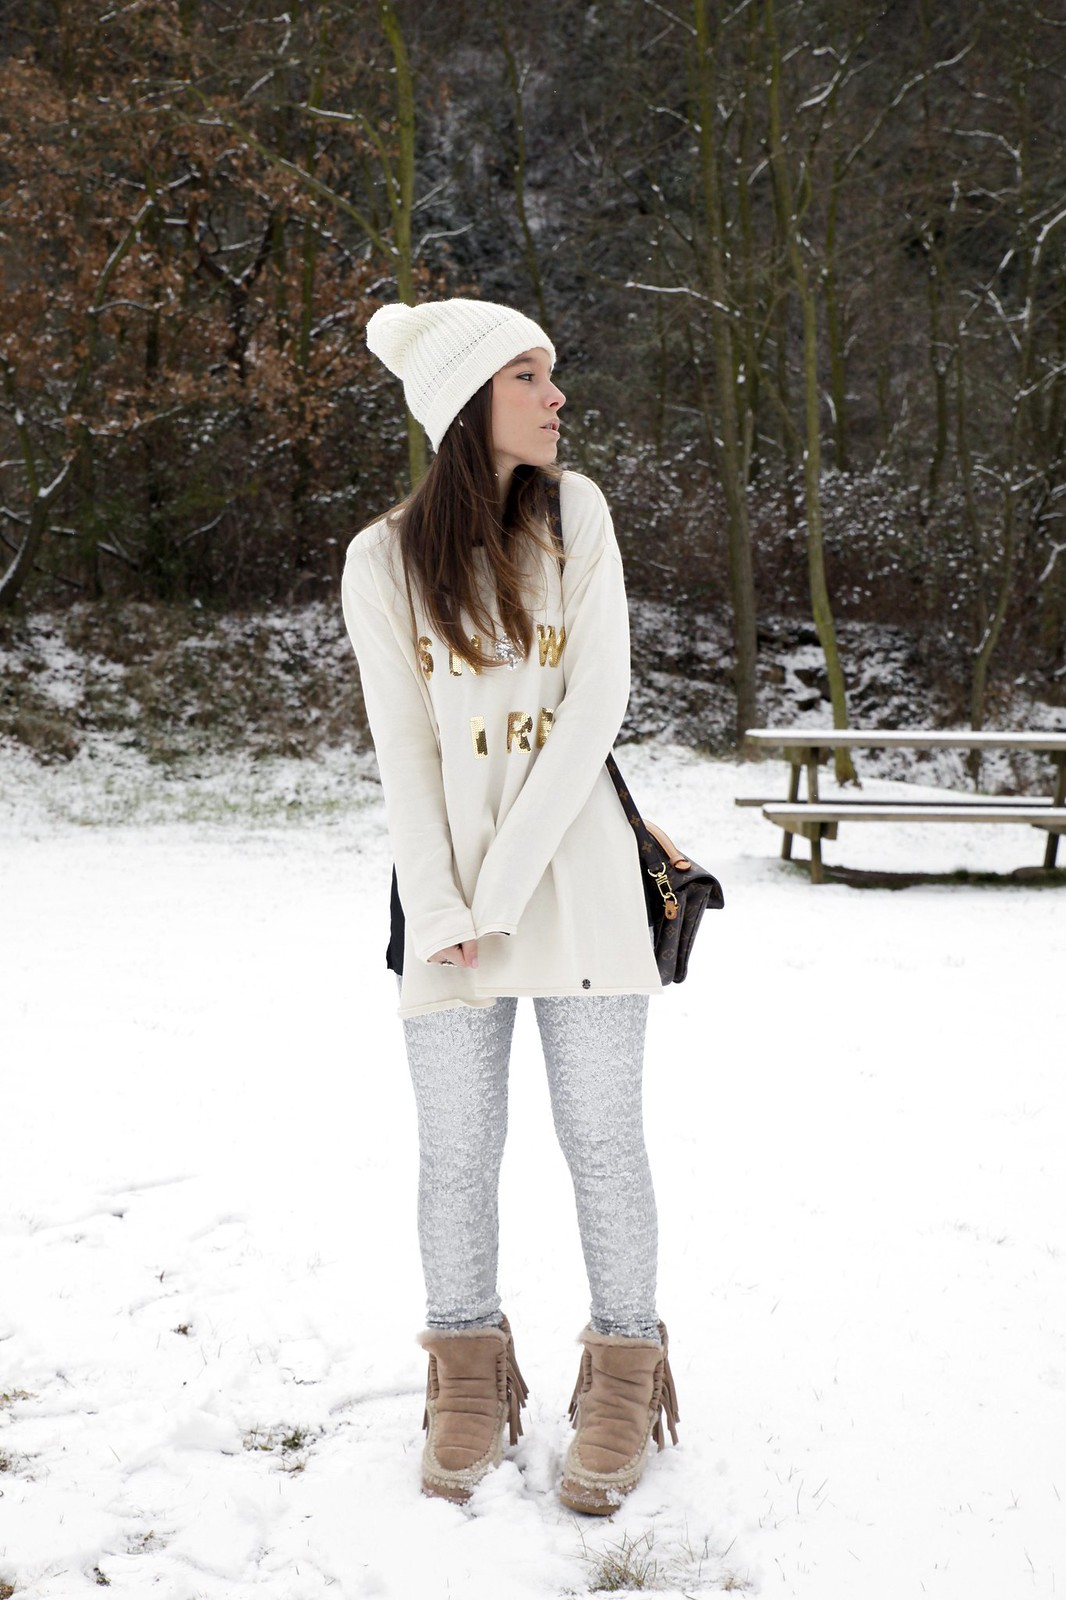 07_SNOW_GIRL_OUTFIT_THEGUESTGIRL_LAURA_SANTOLARIA_FASHION_BLOGGER_RUGACOLLECTION_MOUBOOTS_WINTER